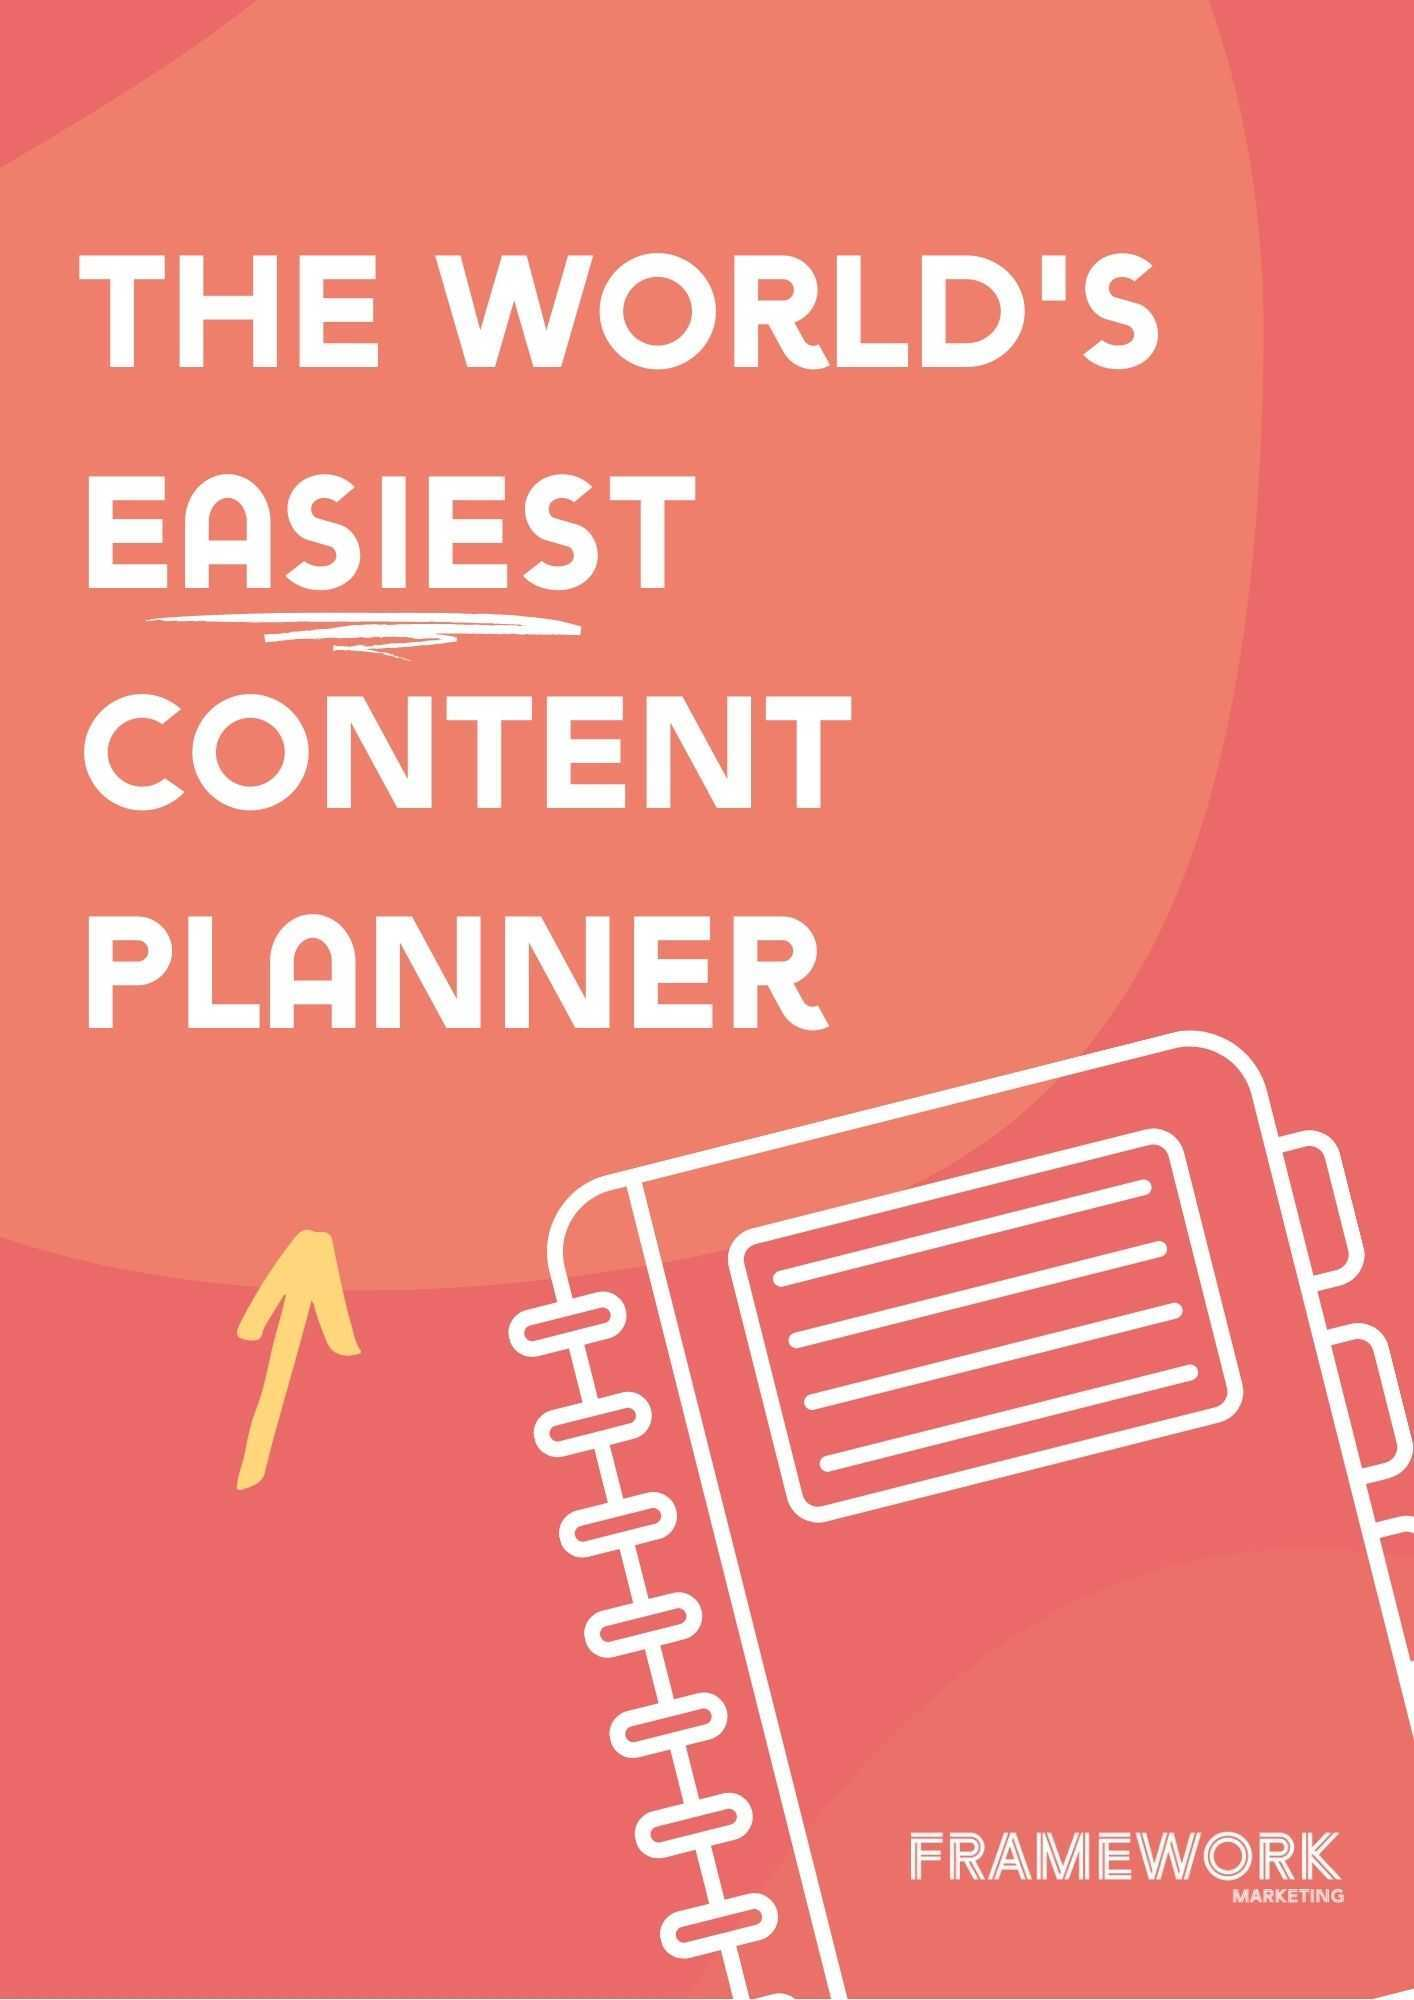 cover for the framework marketing fillable content planner